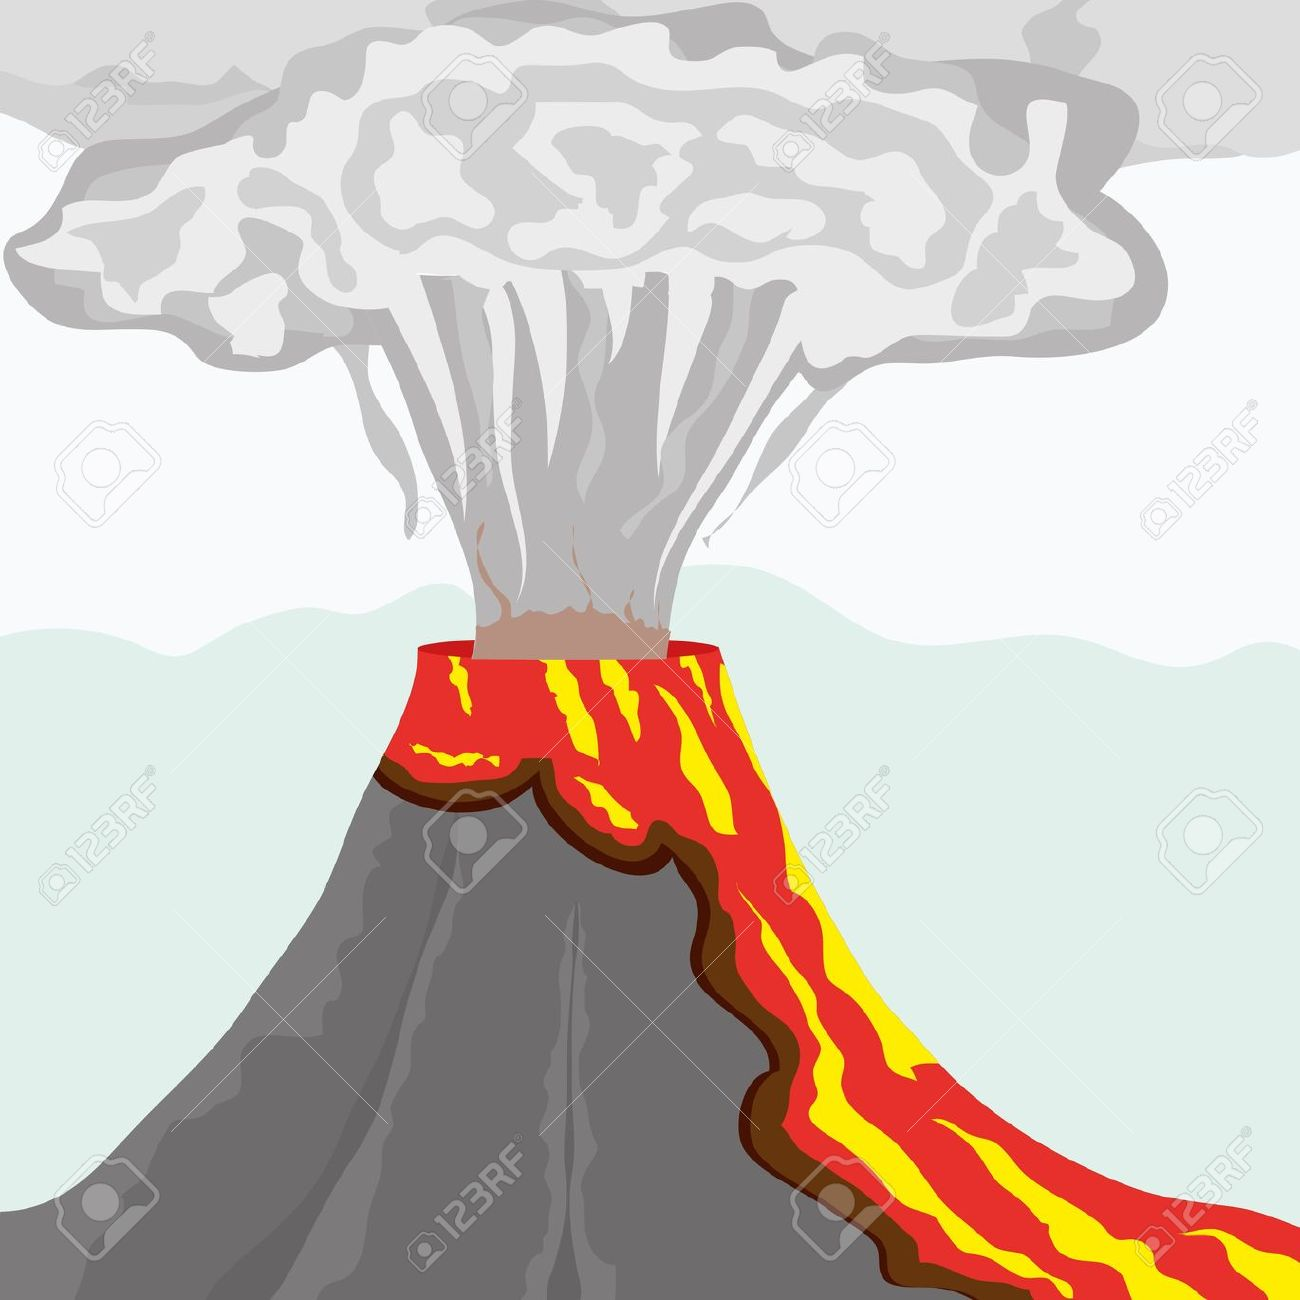 Free Volcano Clipart at GetDrawings.com.